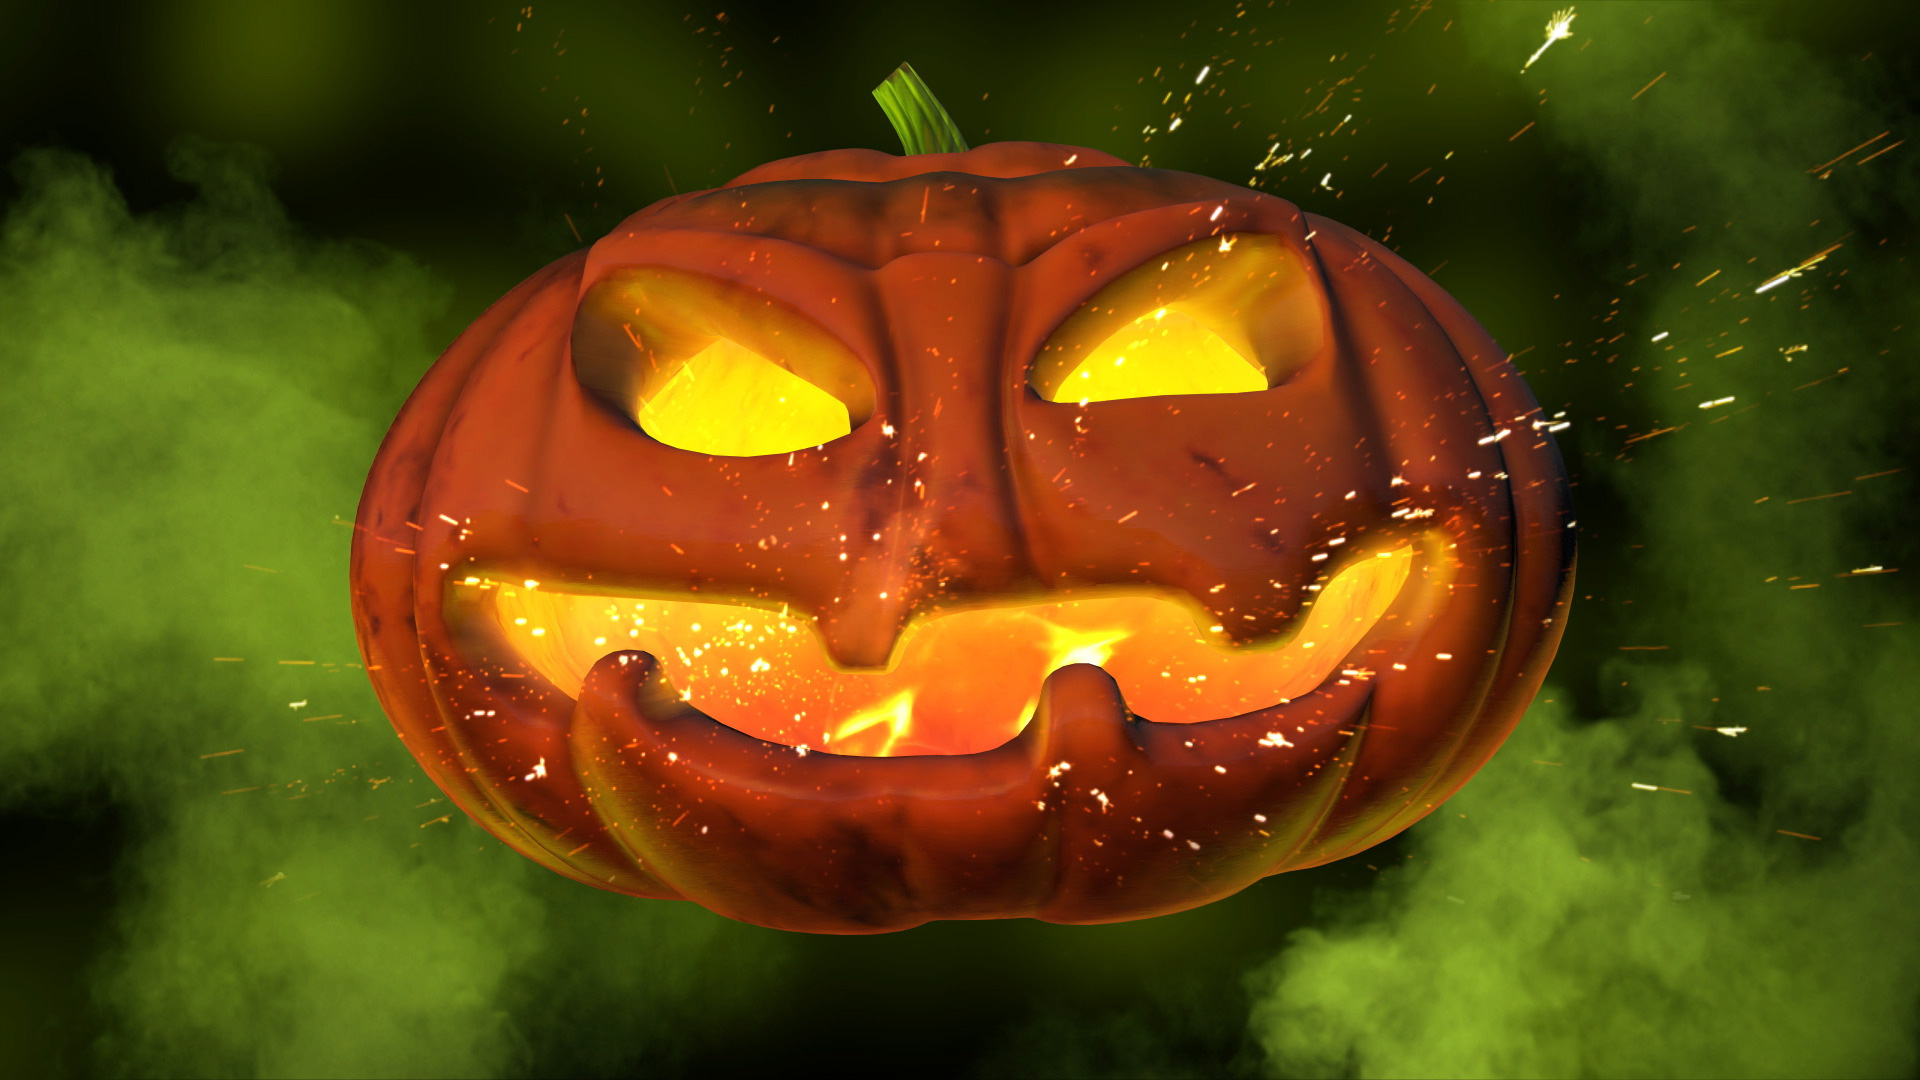 halloween themed visuals - Halloween Themed Pictures